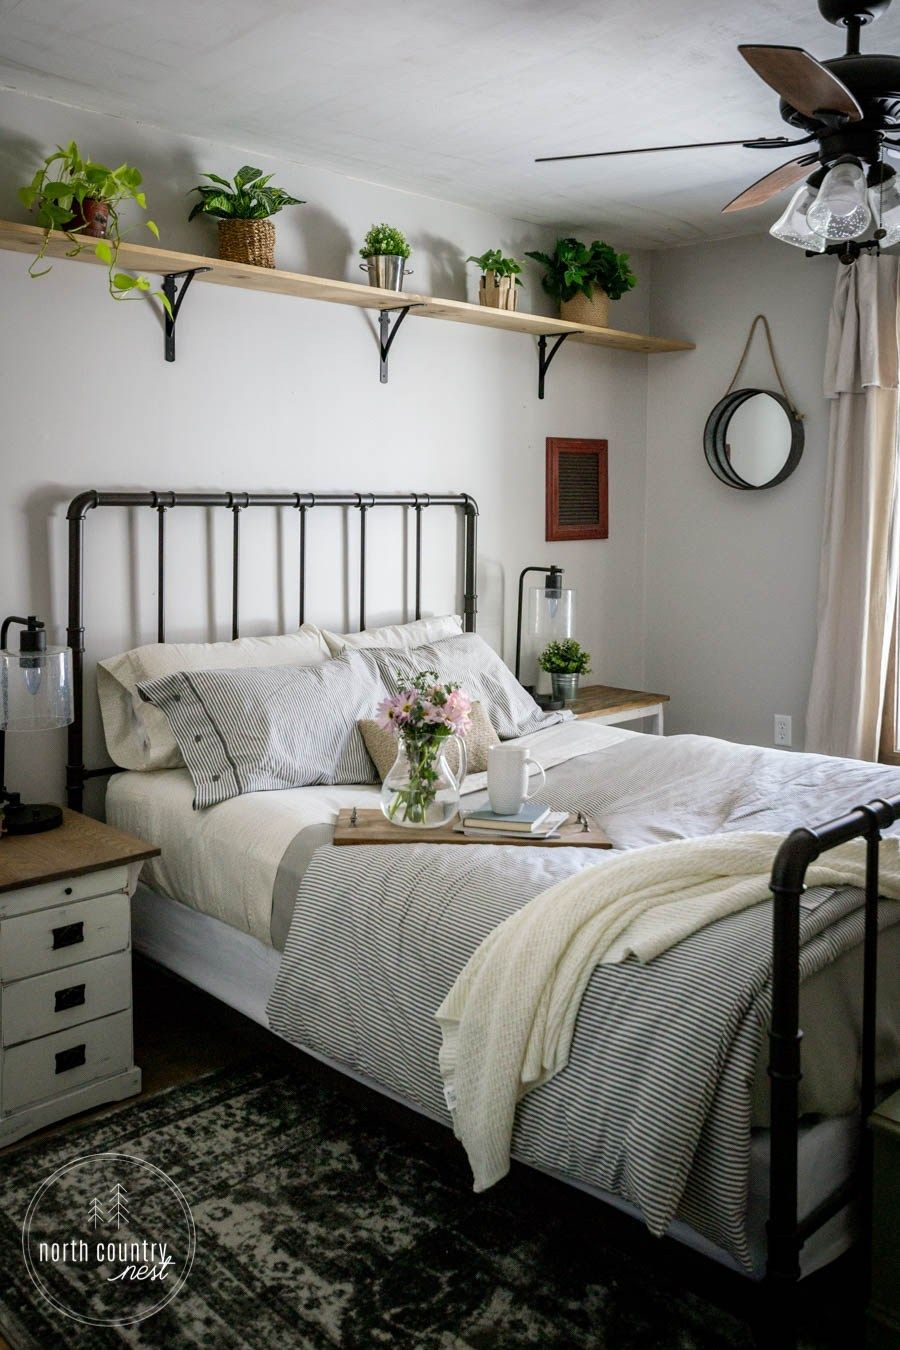 Simple Spring Decor For The Guest Bedroom With Images Home